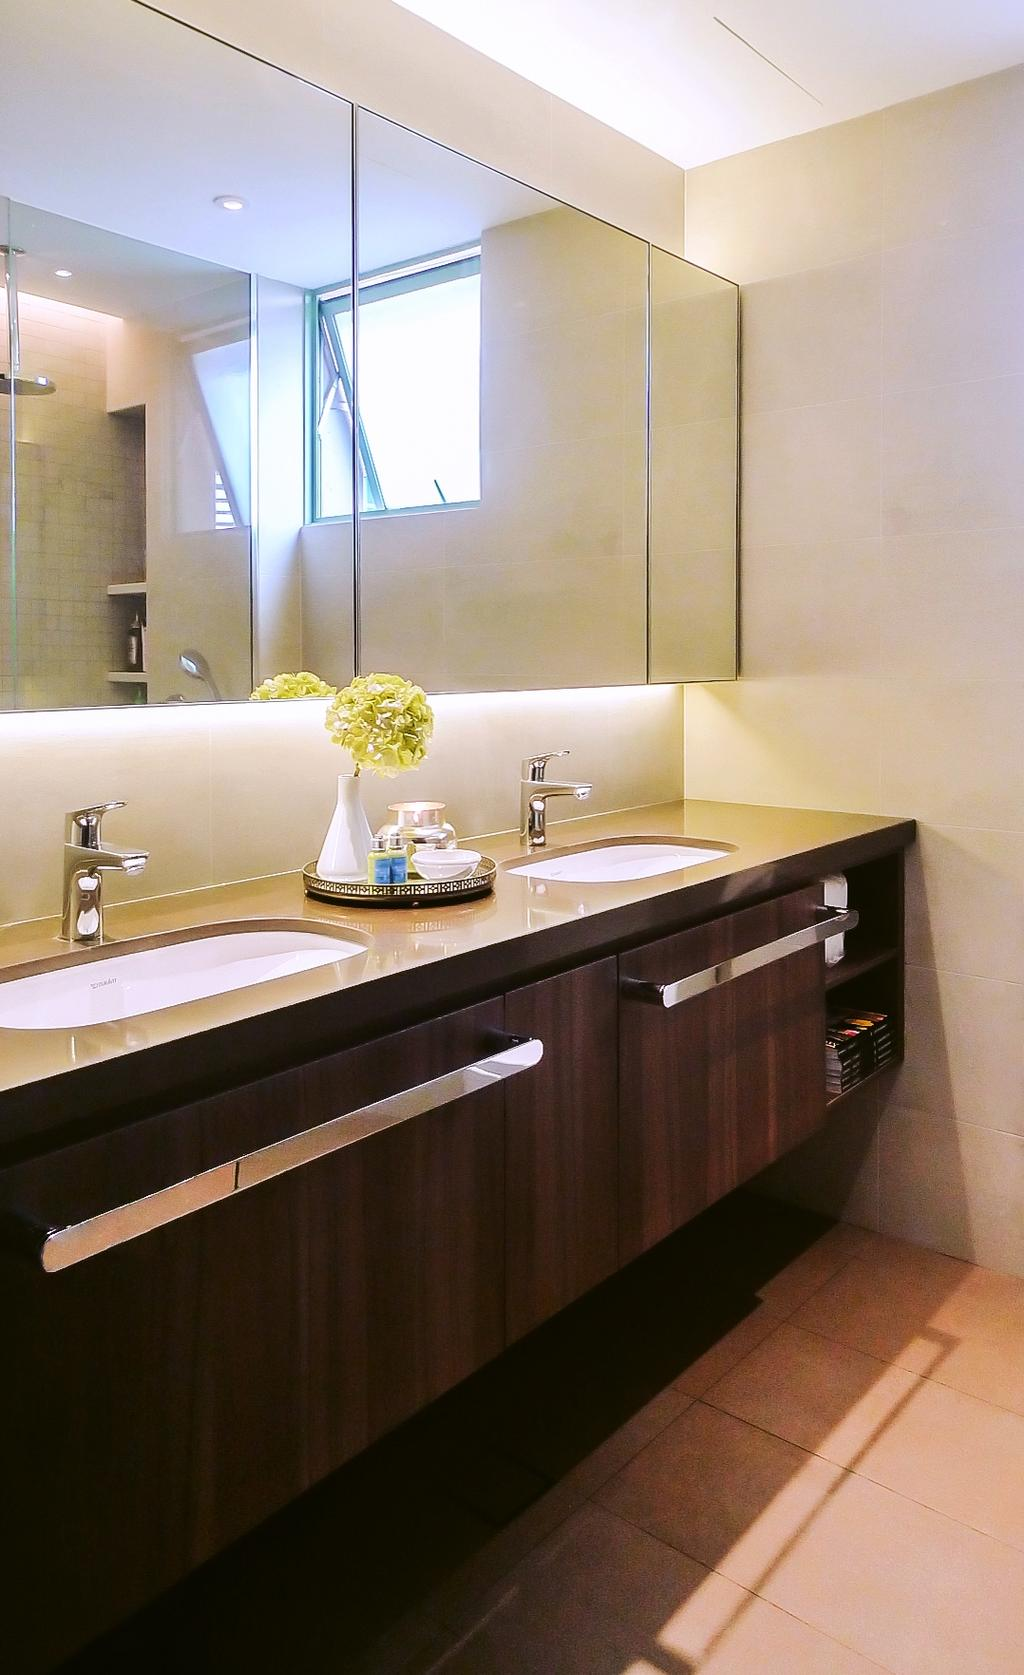 Modern, Condo, Bathroom, Tiara, Architect, JOW Architects, His And Hers Counter, Two Sinks, Vanity Counter, Mirror Cabinet, Towel Rack, Vanity Cabinet, Sink